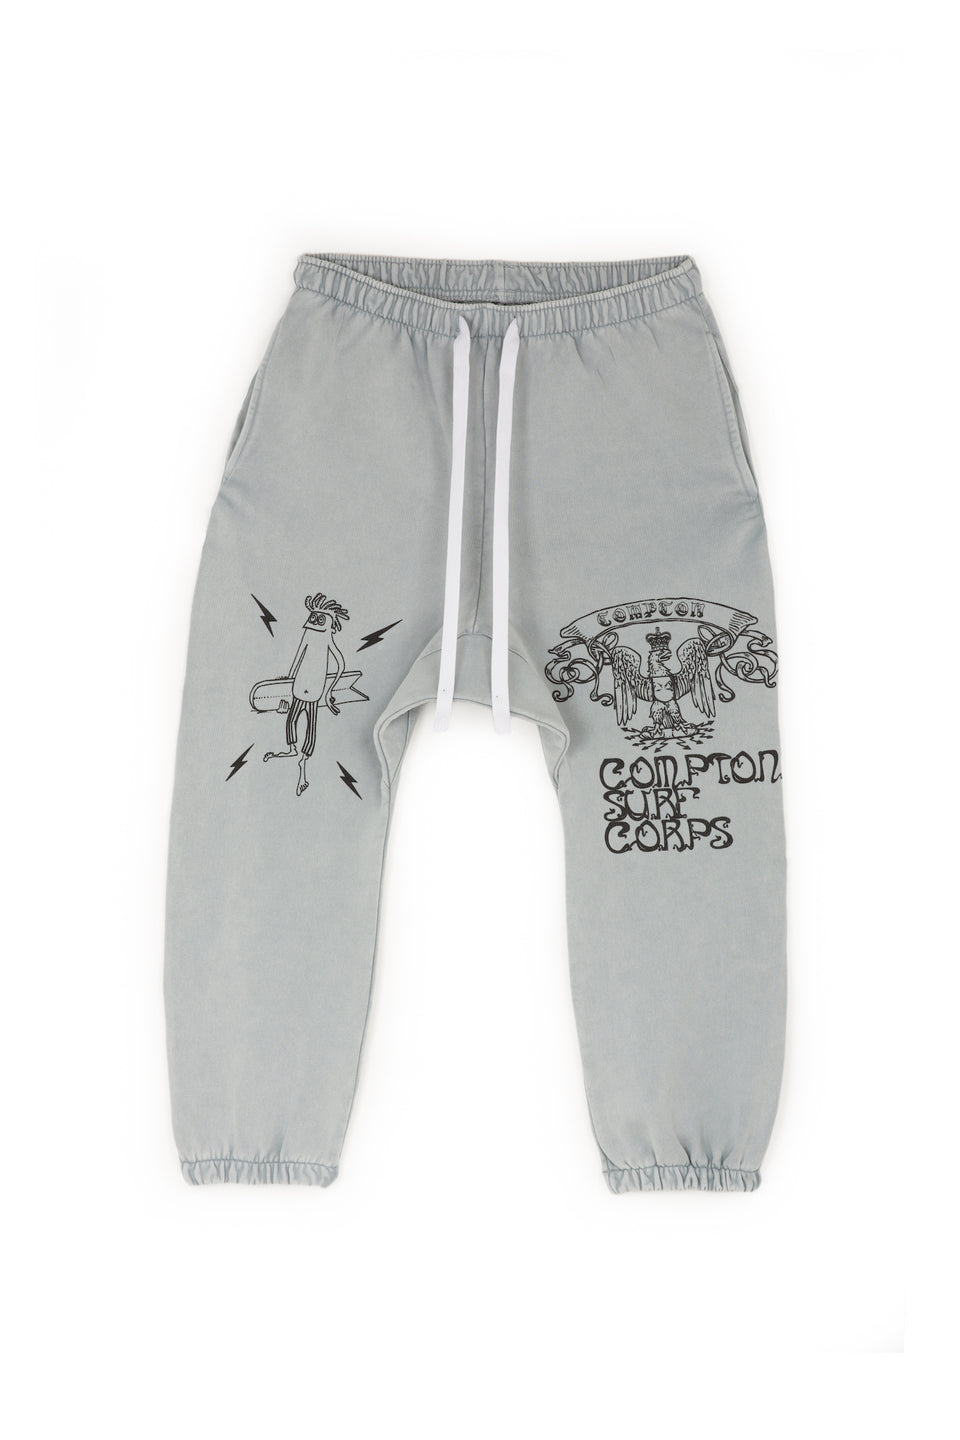 Compton Surf Sweats V2